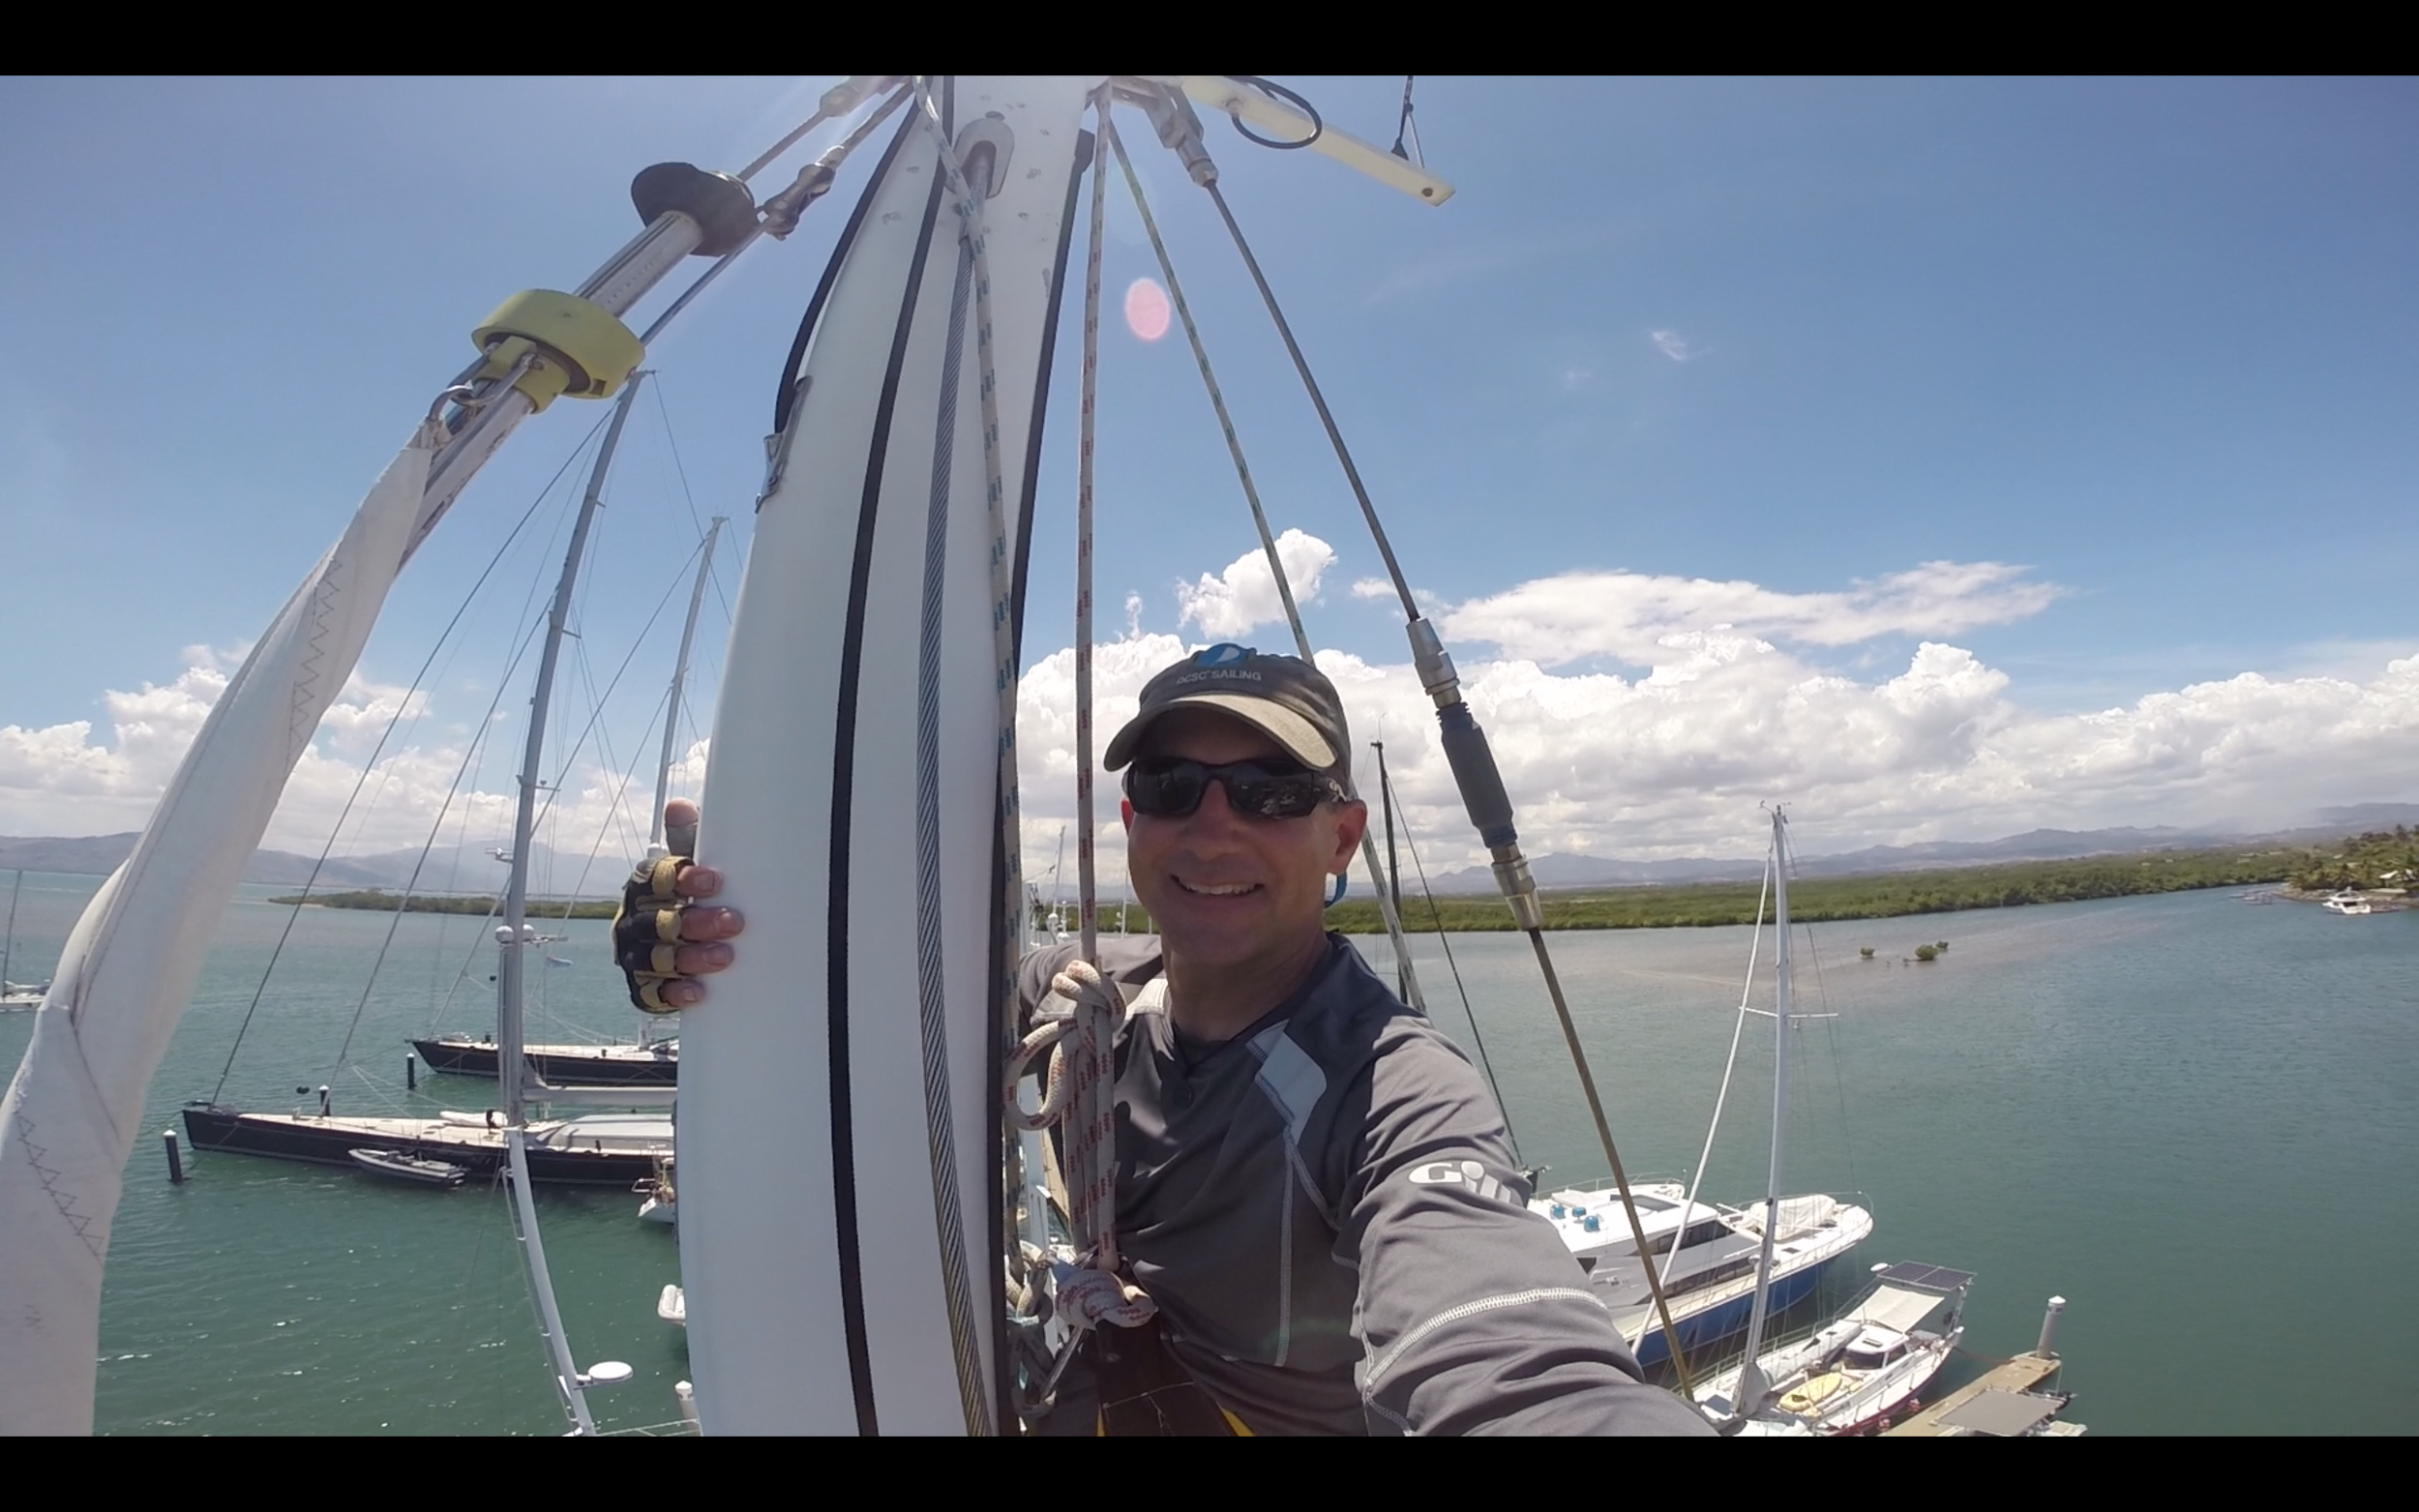 Up the mast! What a view!